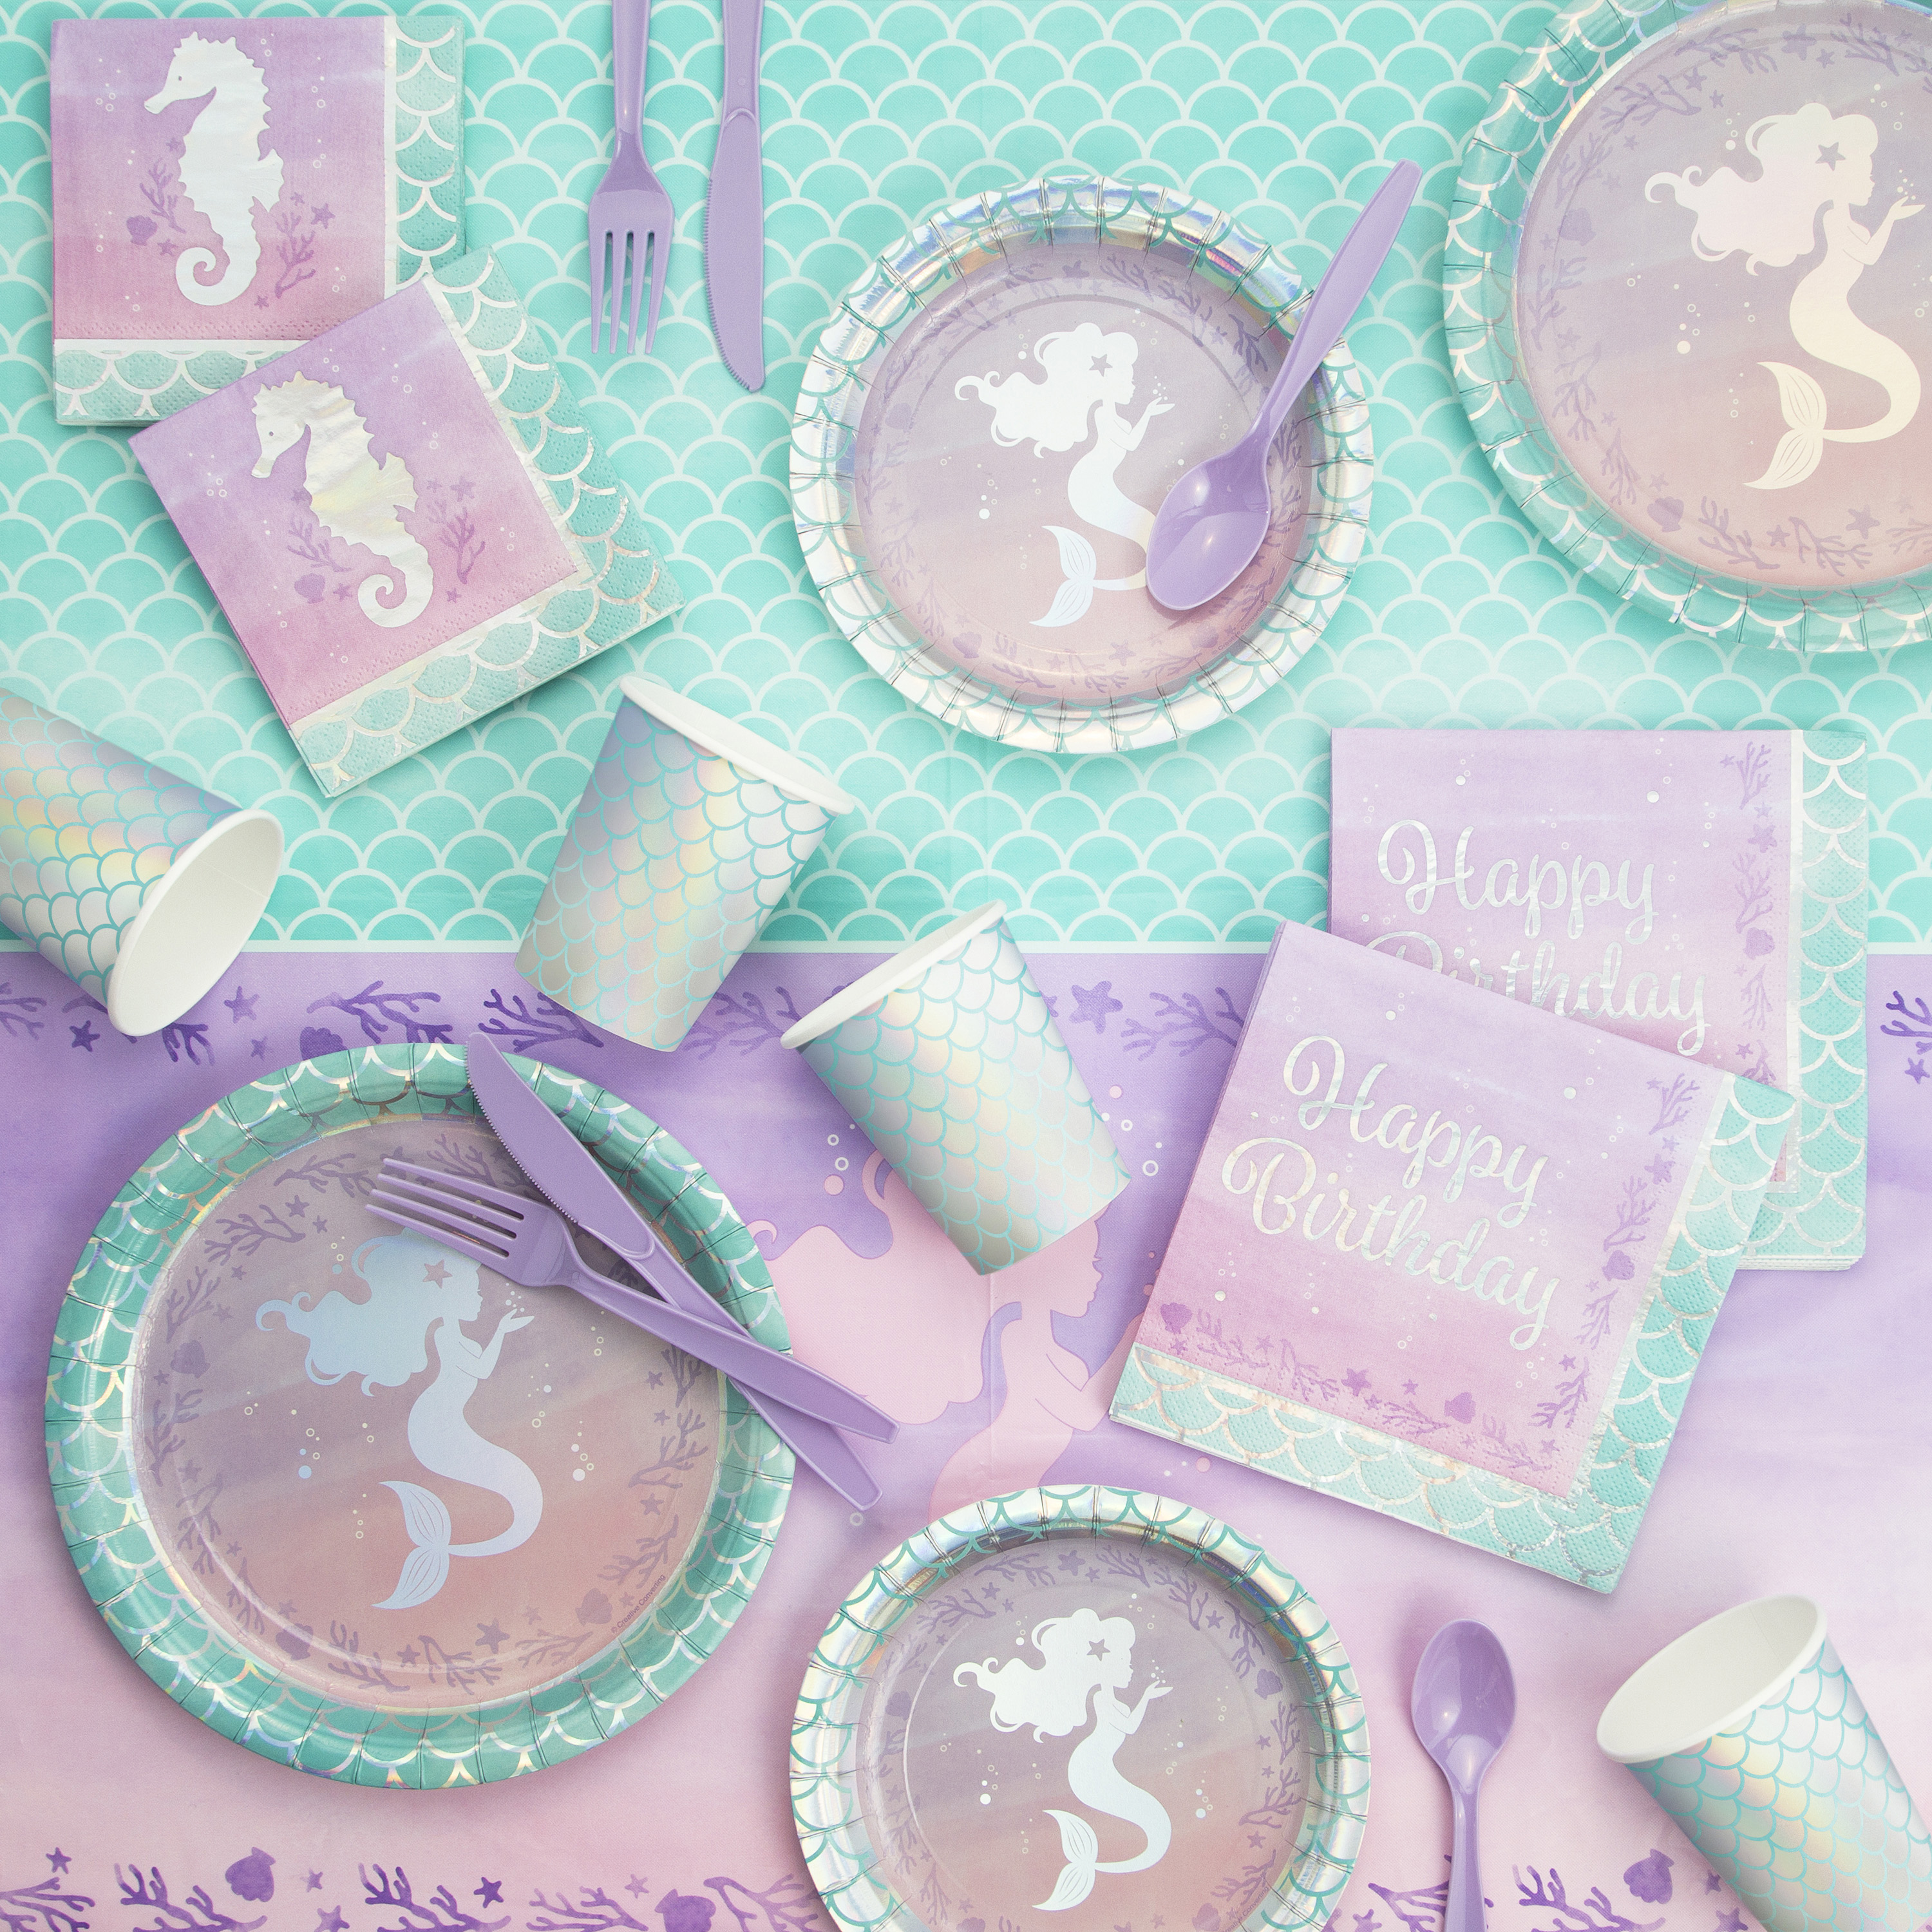 Iridescent Mermaid Party Birthday Party Supplies Kit